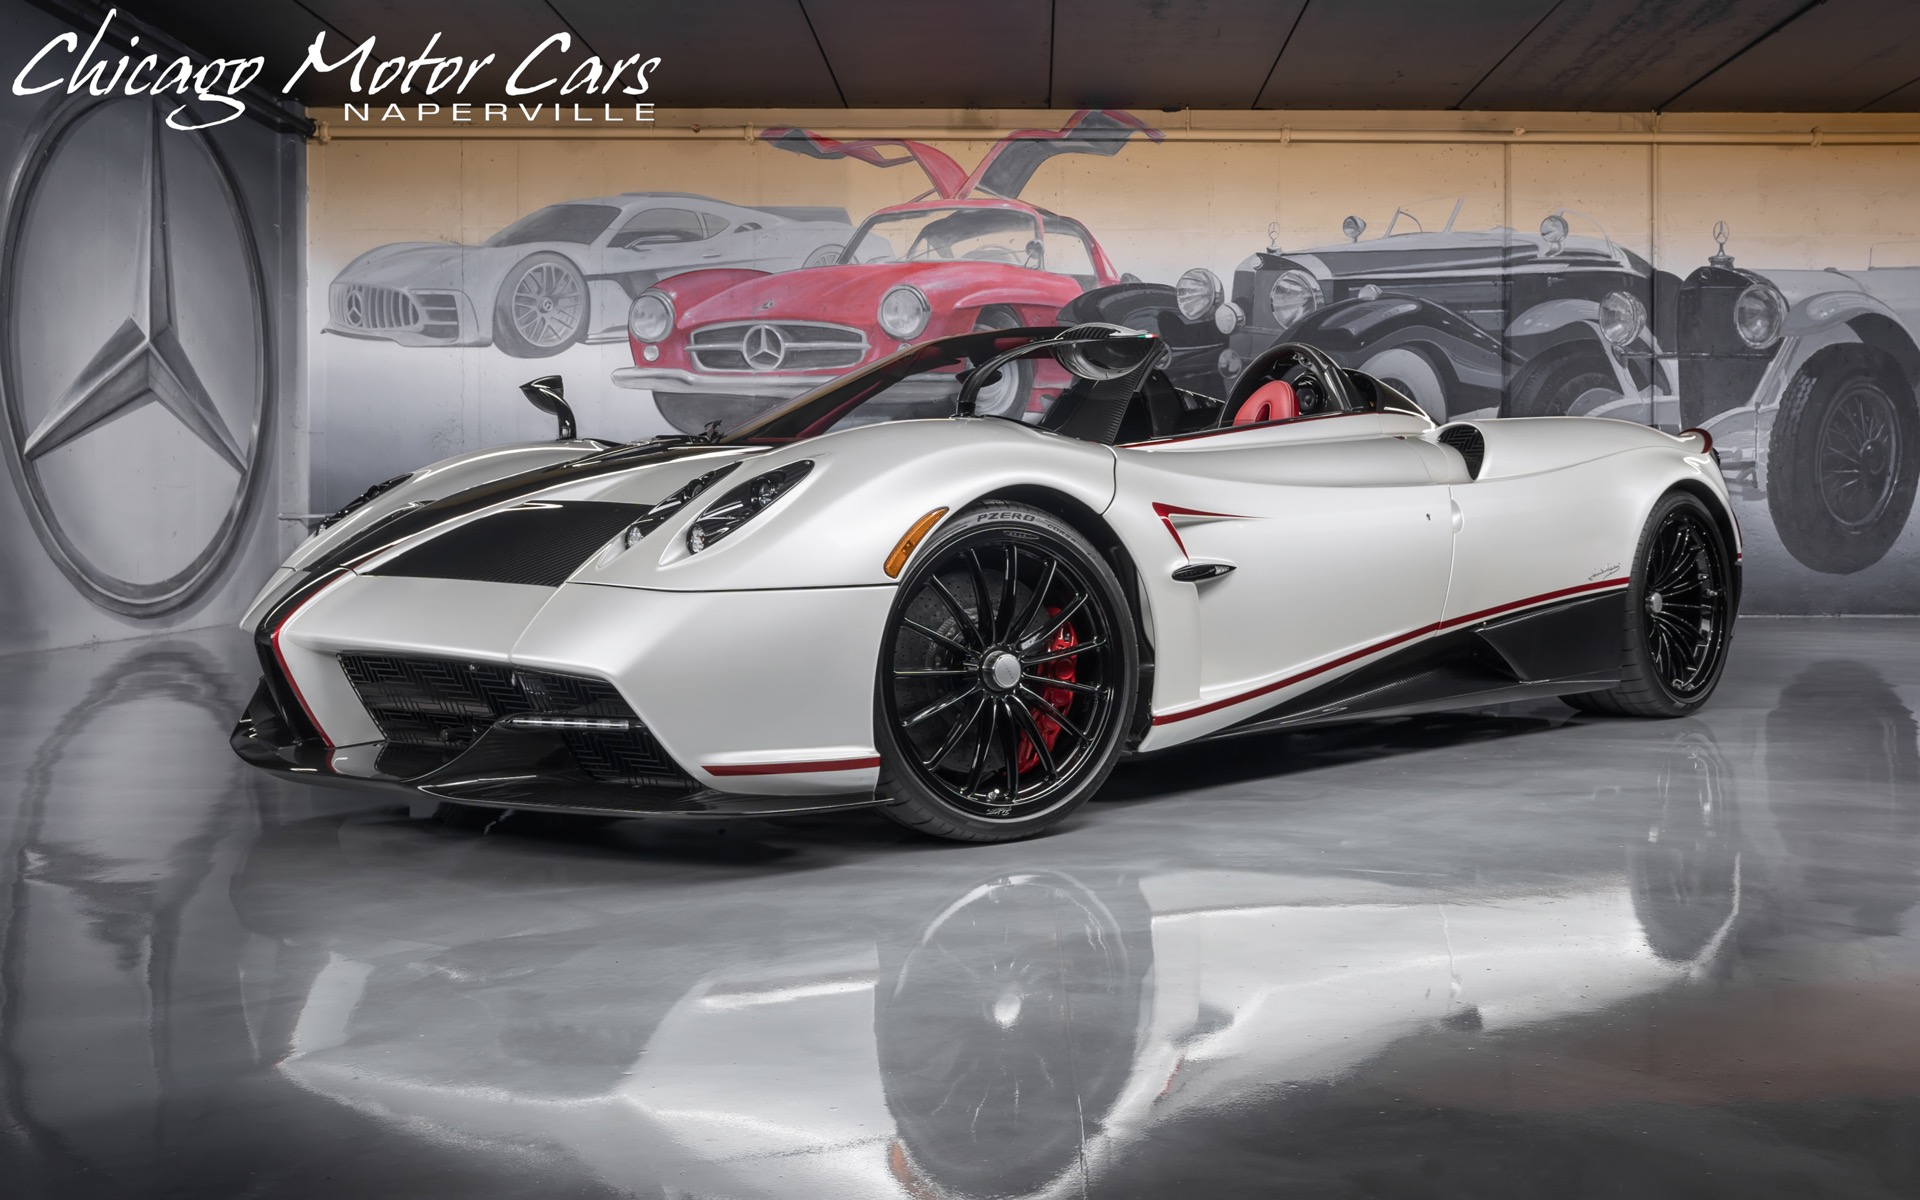 Used 2017 Pagani Huayra Roadster 1 Of 100 Made Only 151 Miles Collector Grade Just Serviced For Sale Special Pricing Chicago Motor Cars Stock 17557